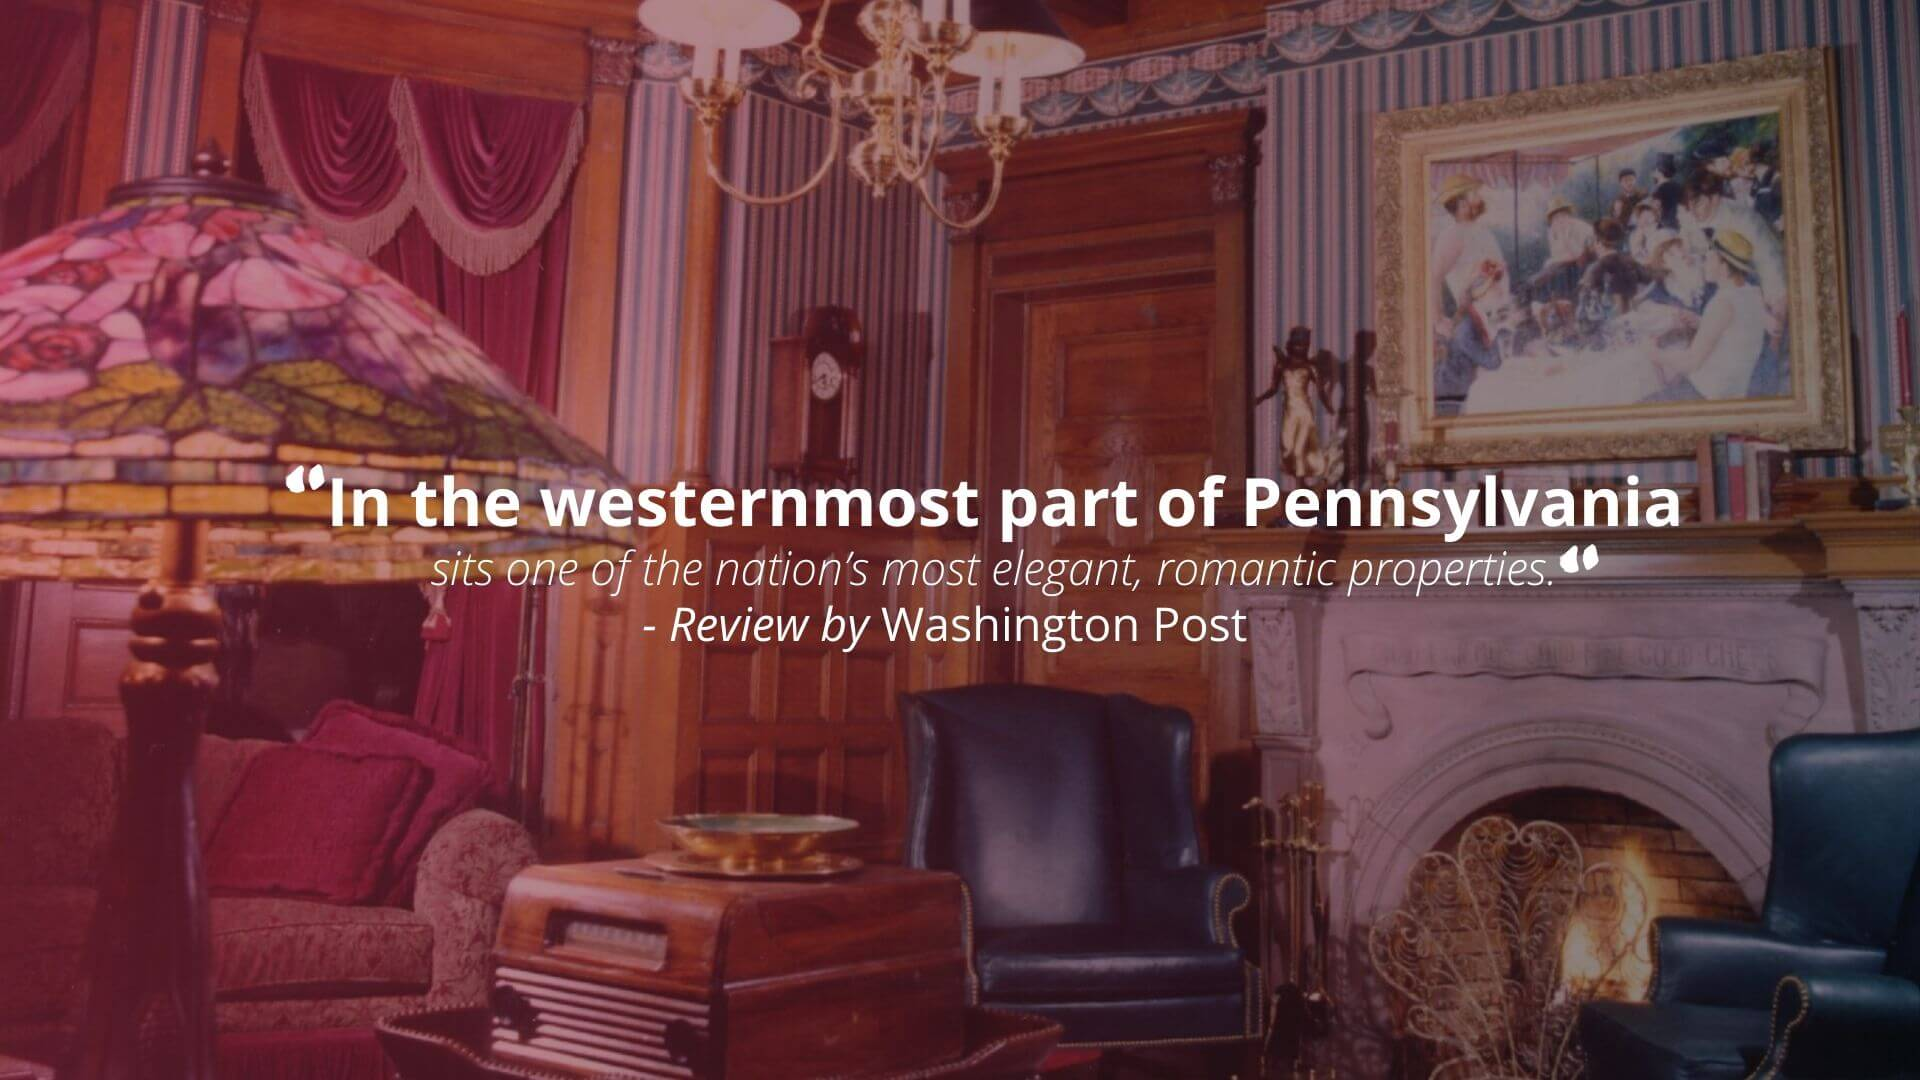 """In the westernmost part of Pennsylvania sits one of the nation's most elegant, romantic properties."" - Review by Washington Post"